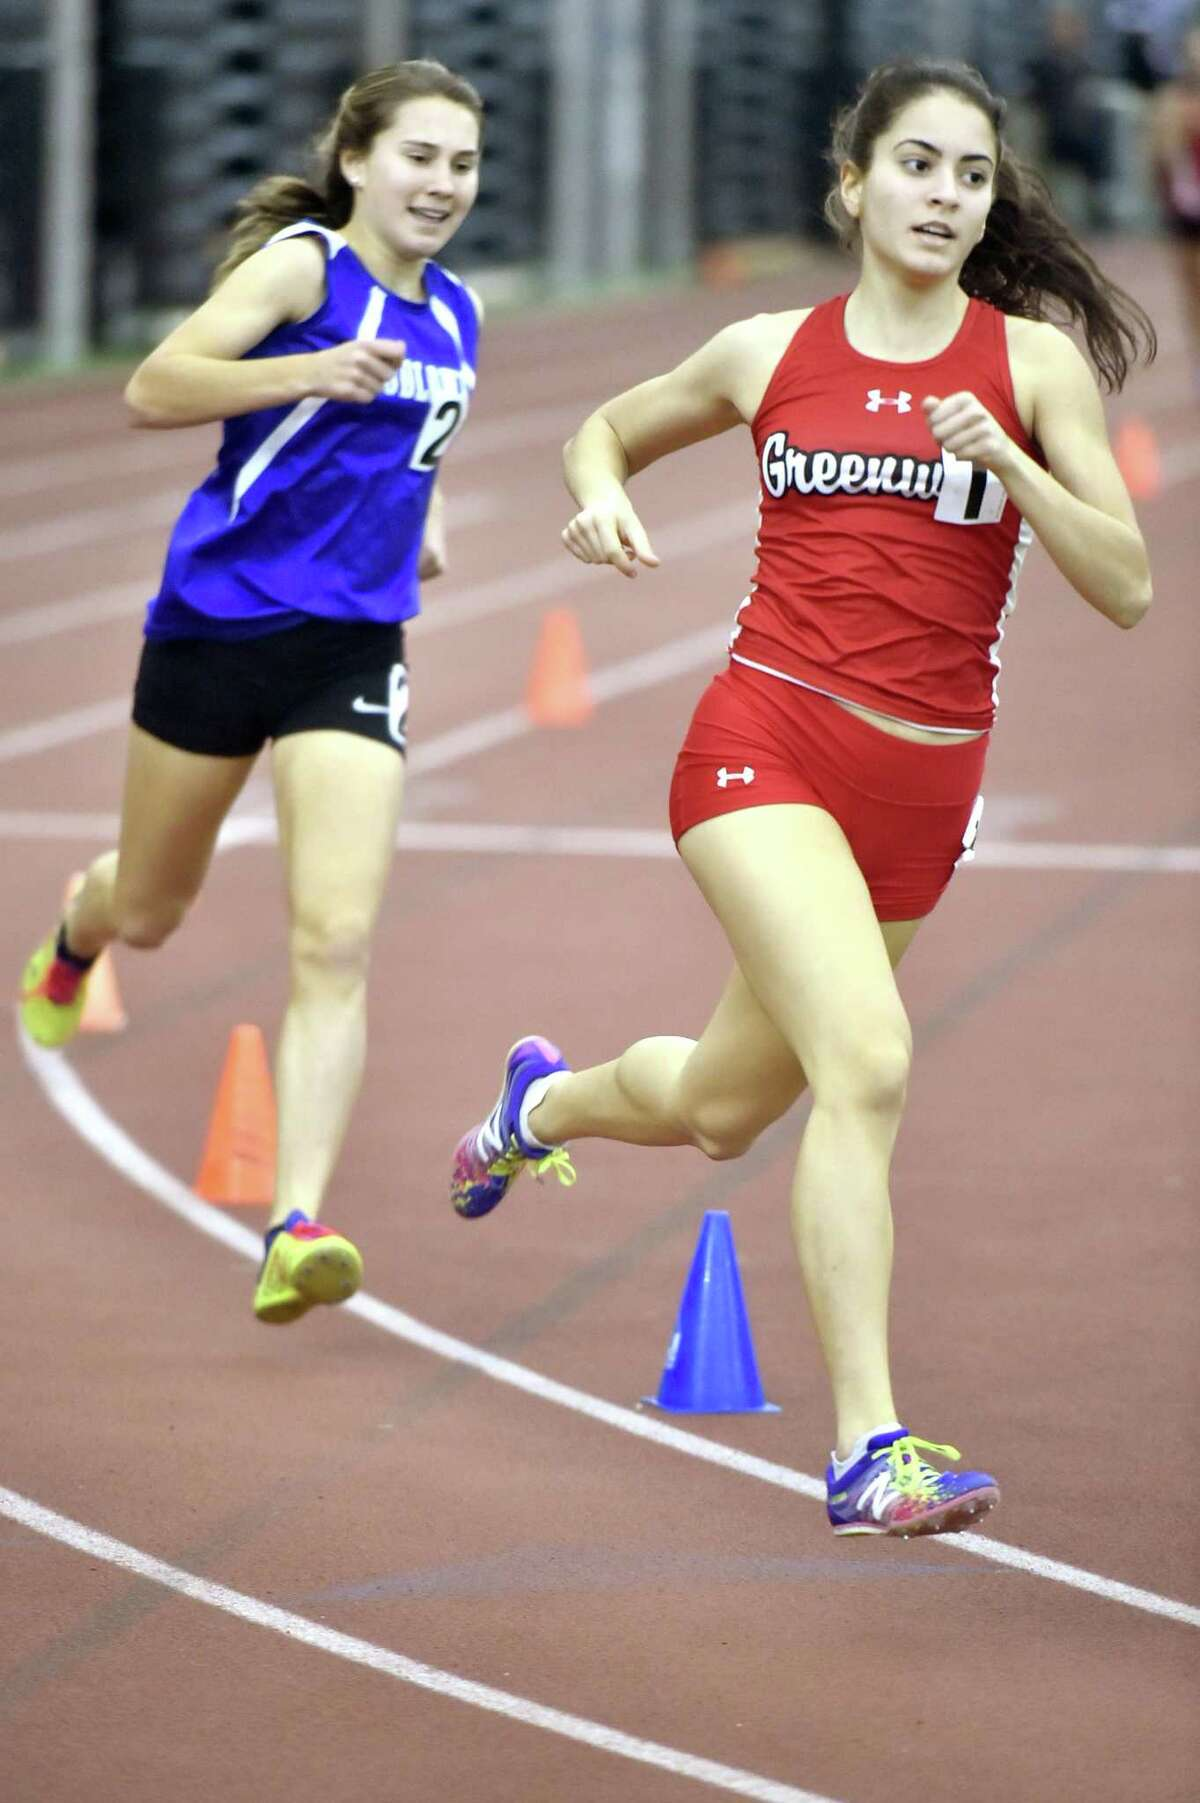 New Haven, Connecticut - Saturday, February 10, 2018: Girls 1000 meter run winner Emily Philippides of Greenwich H.S., right, runs ahead of eventual third place winner Alyssa Kraus of Fairfield-Ludlowe H.S. during the 2018 State Class LL Girls and Boys Indoor Track and Field Championship at the Floyd Little Athletic Center in New Haven .